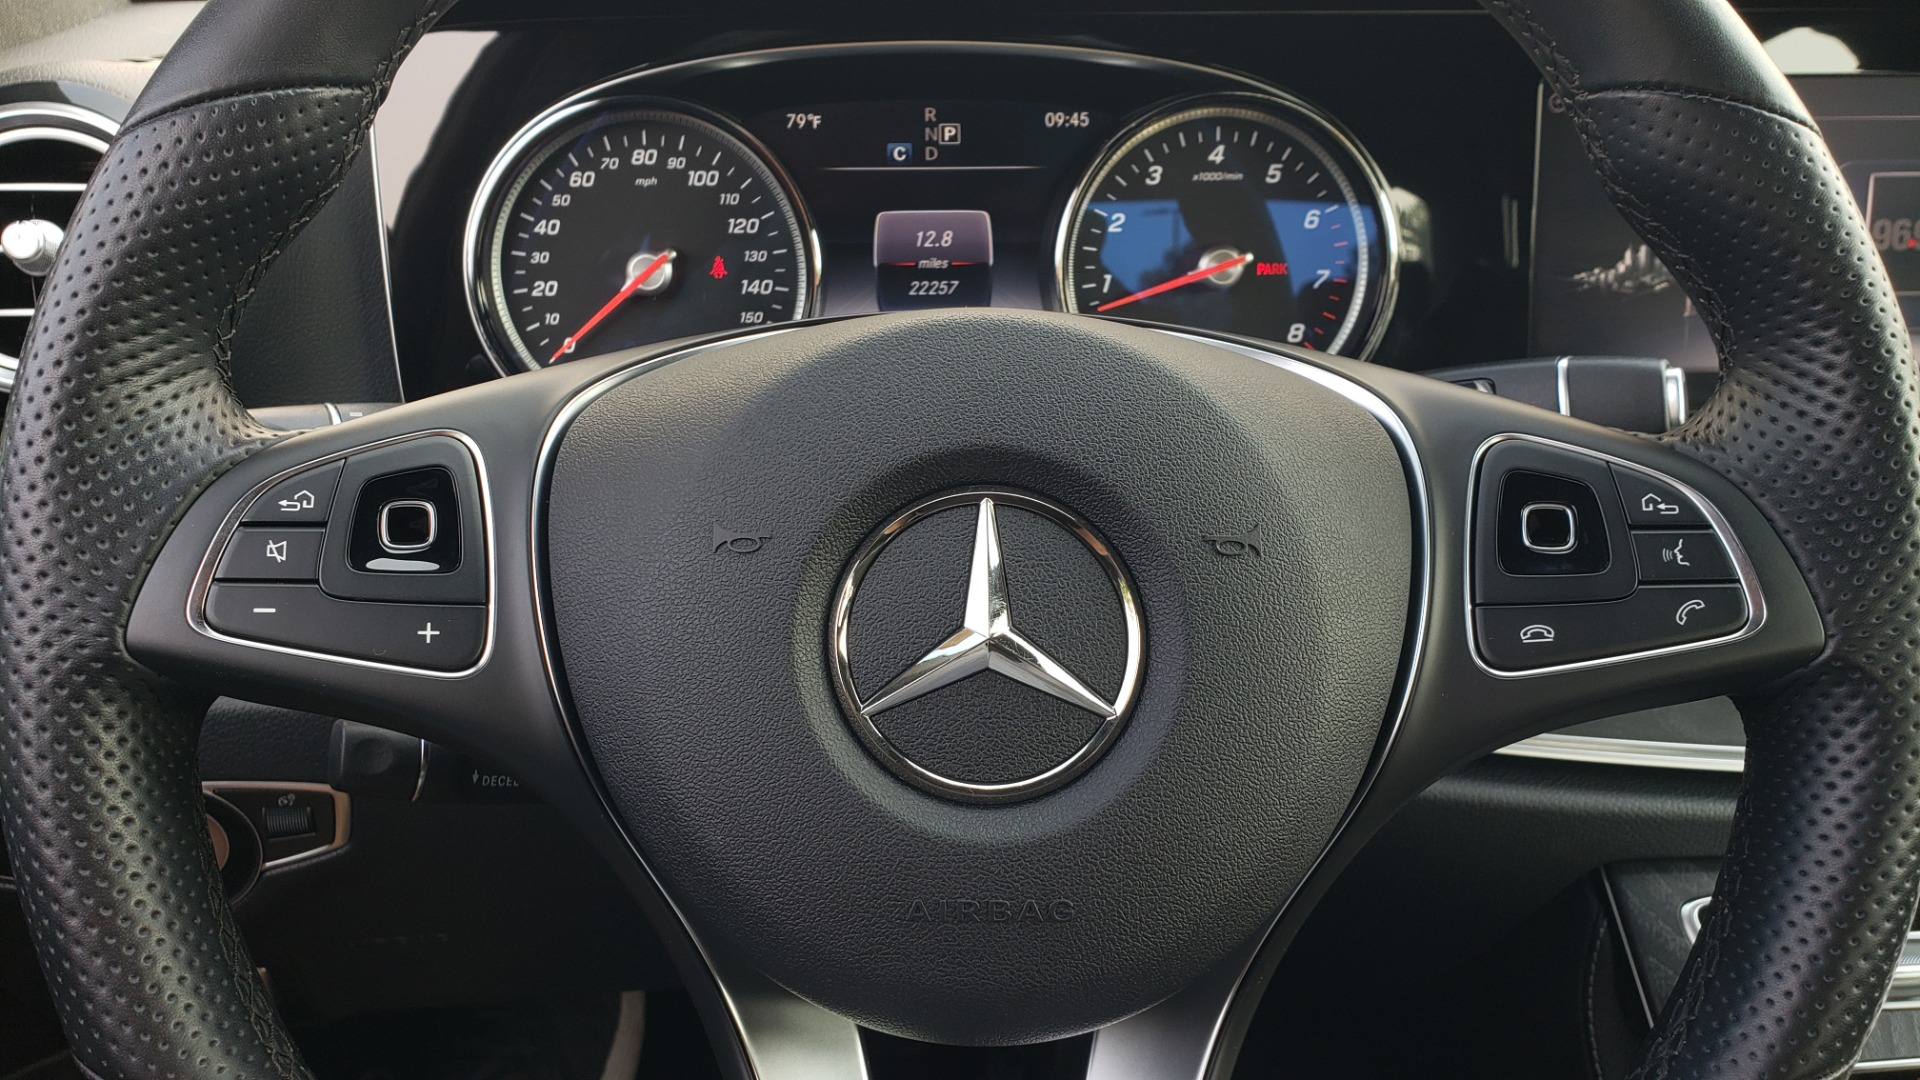 Used 2018 Mercedes-Benz E-CLASS E 300 4MATIC / PREMIUM / NAV / PANO-ROOF / BURMESTER / REARVIEW for sale $41,995 at Formula Imports in Charlotte NC 28227 38